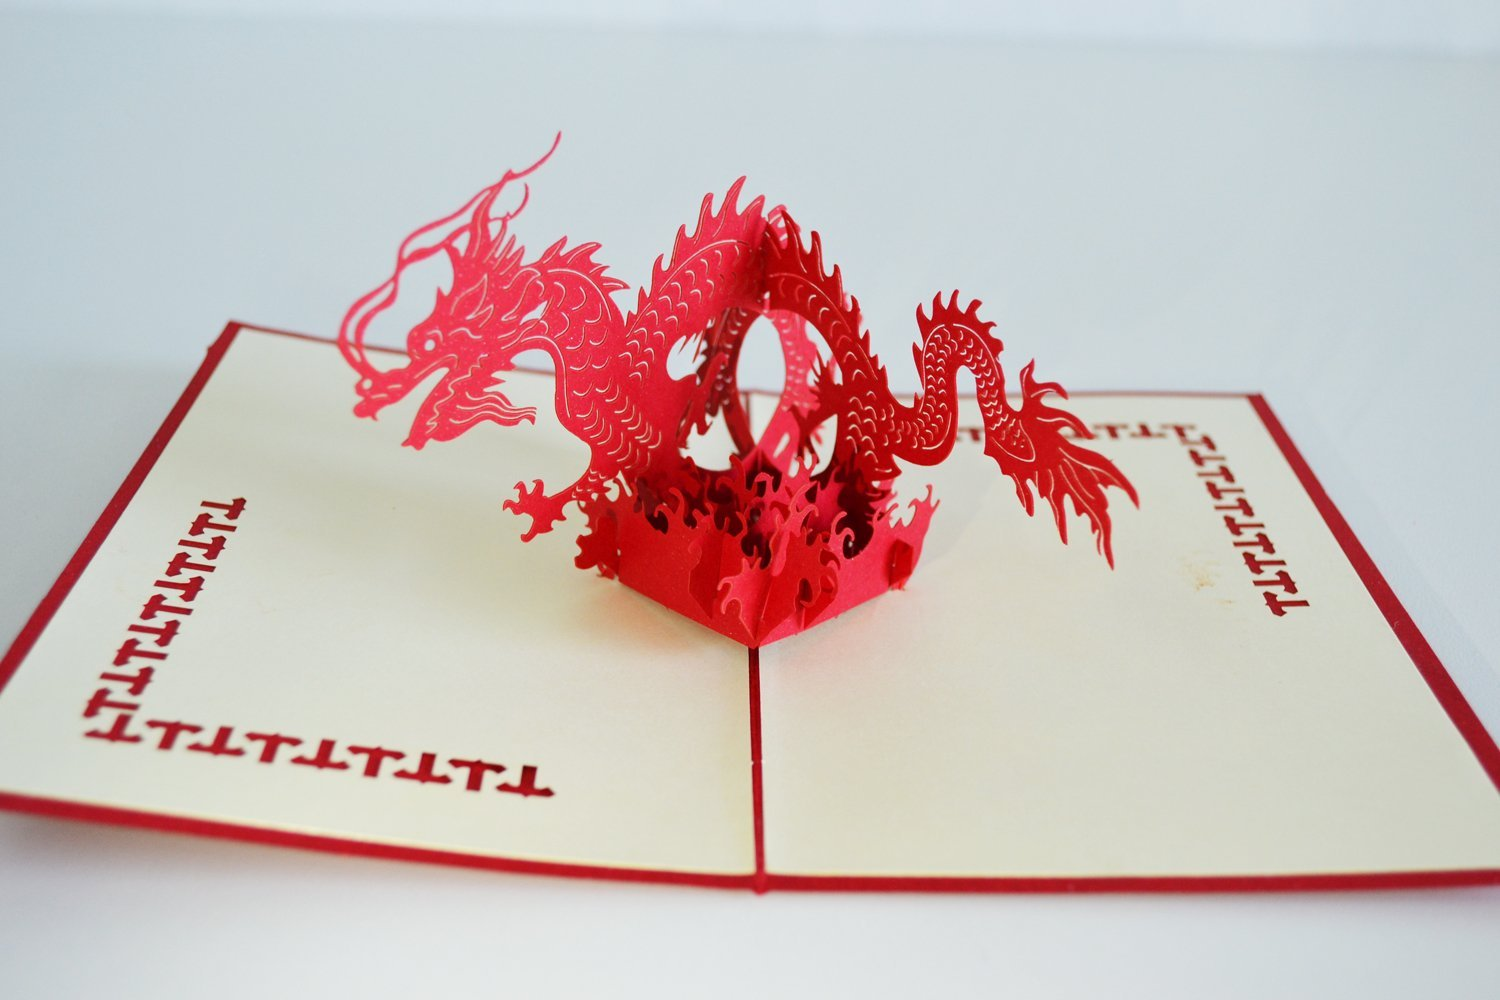 Cheap wedding greeting cards find wedding greeting cards deals on get quotations dragon greeting card 3d pop up new years customized greeting words wedding christmas cards thanksgiving gift kristyandbryce Gallery